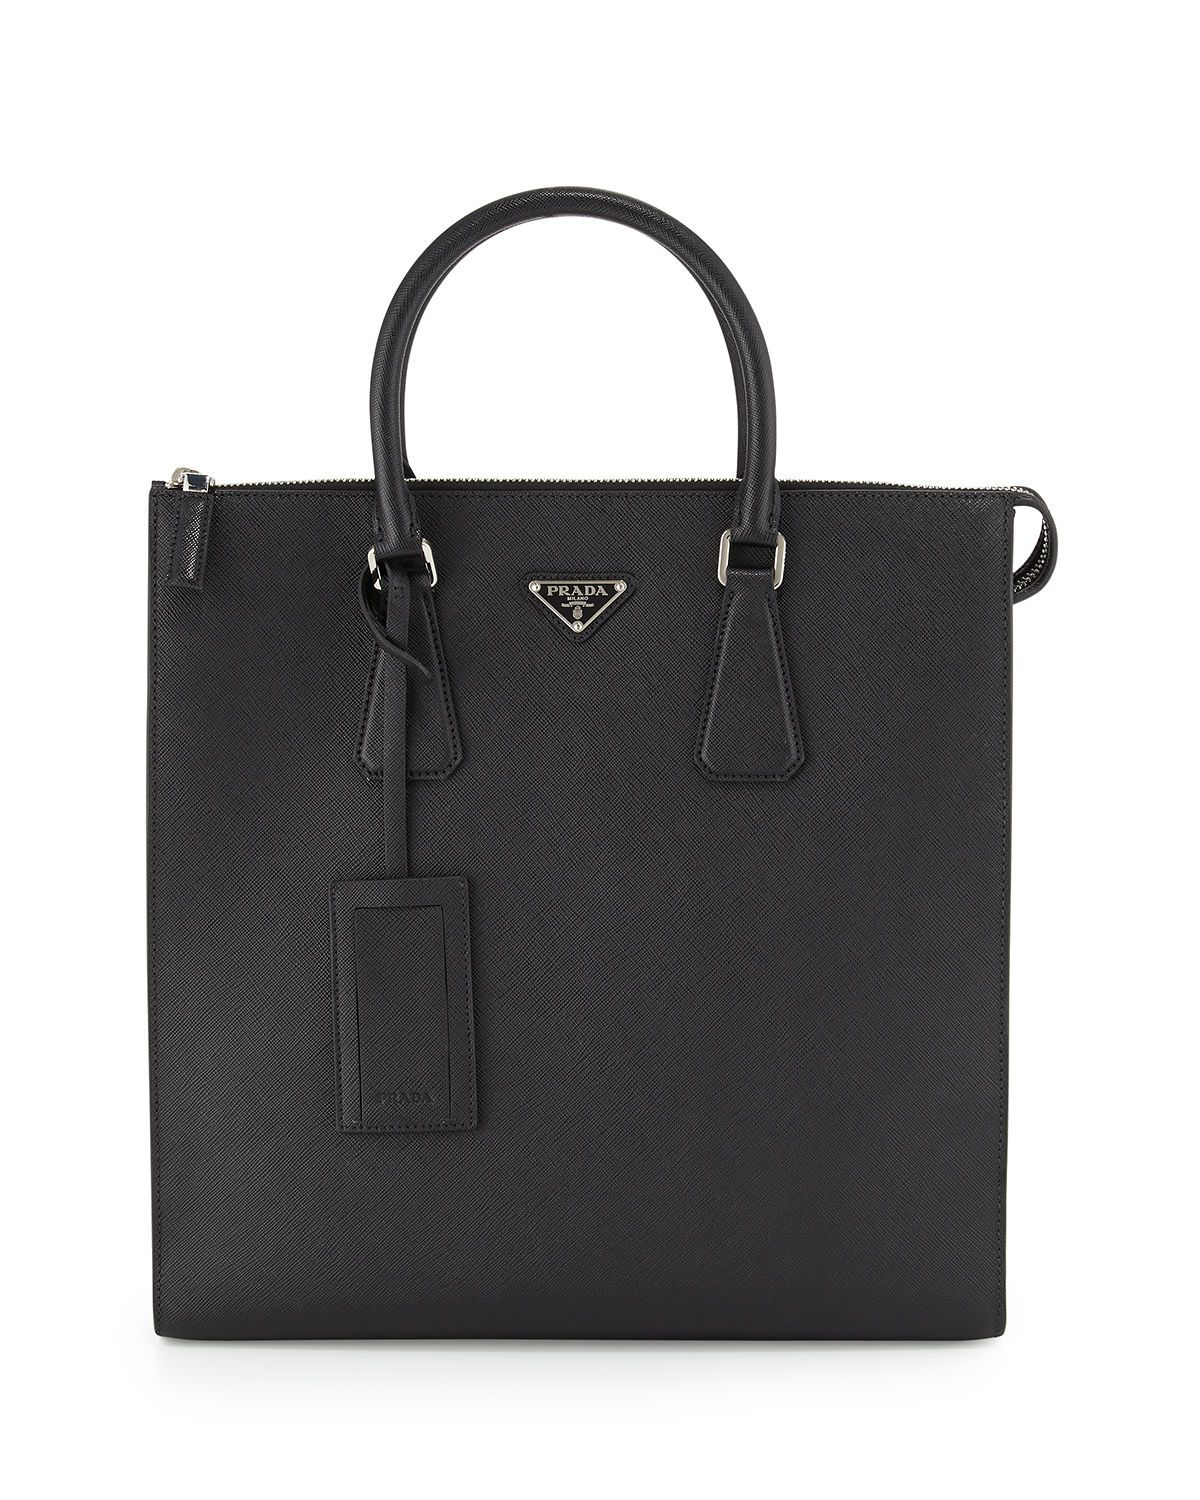 cba99f7cefc59 Prada tote bag in saffiano leather with polished steel hardware. Rolled  tote handles; logo-embossed hanging ID tag. Signature enamel triangle logo  at top ...